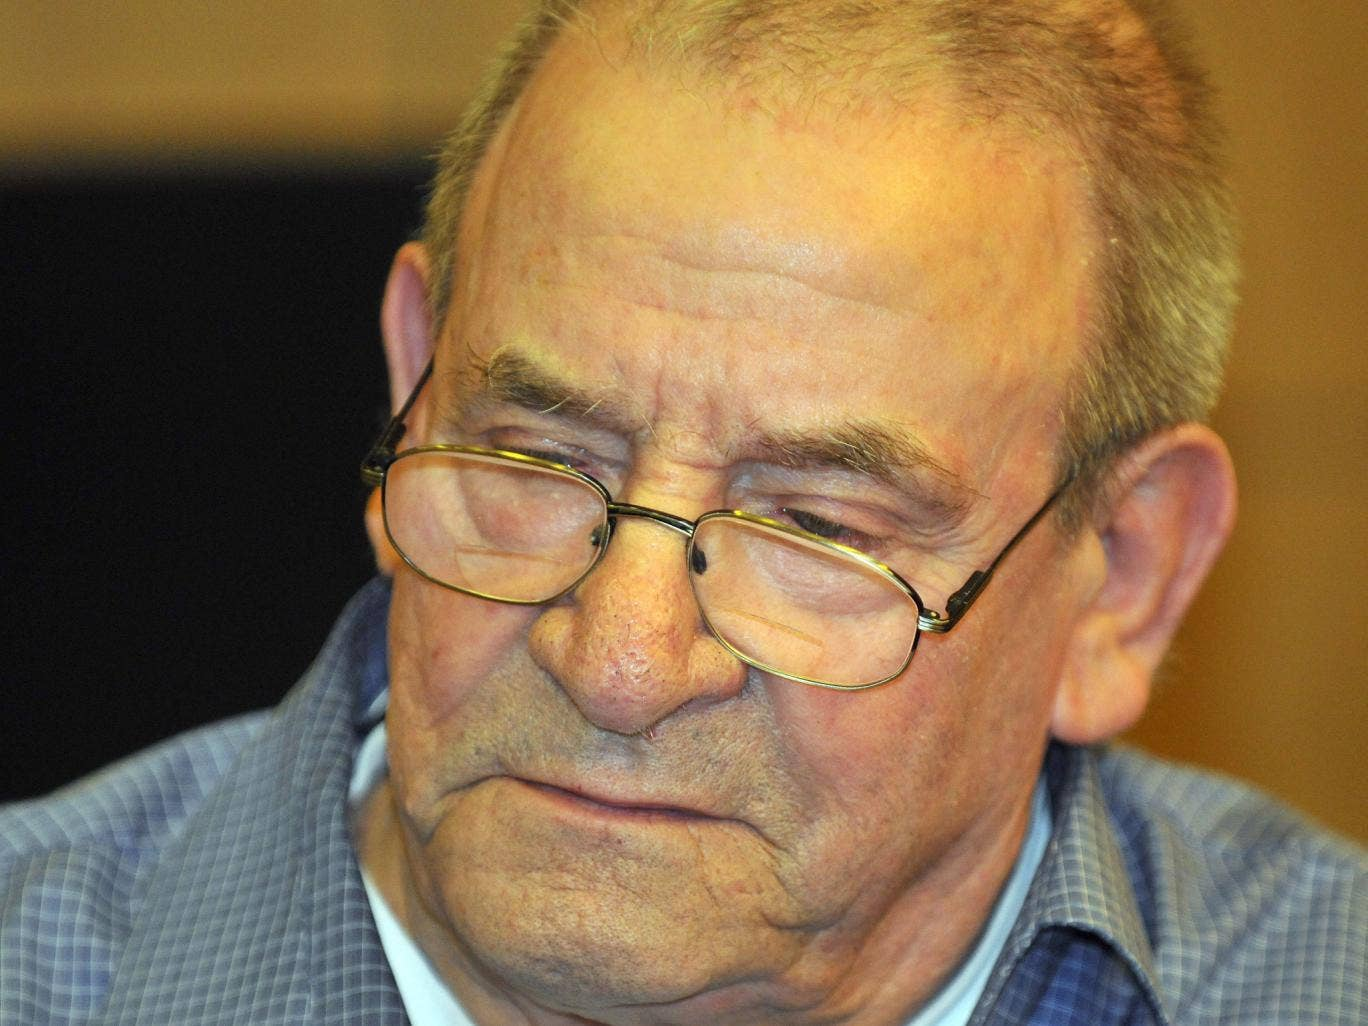 Boere in court in 2009: he refused to apologise for his actions